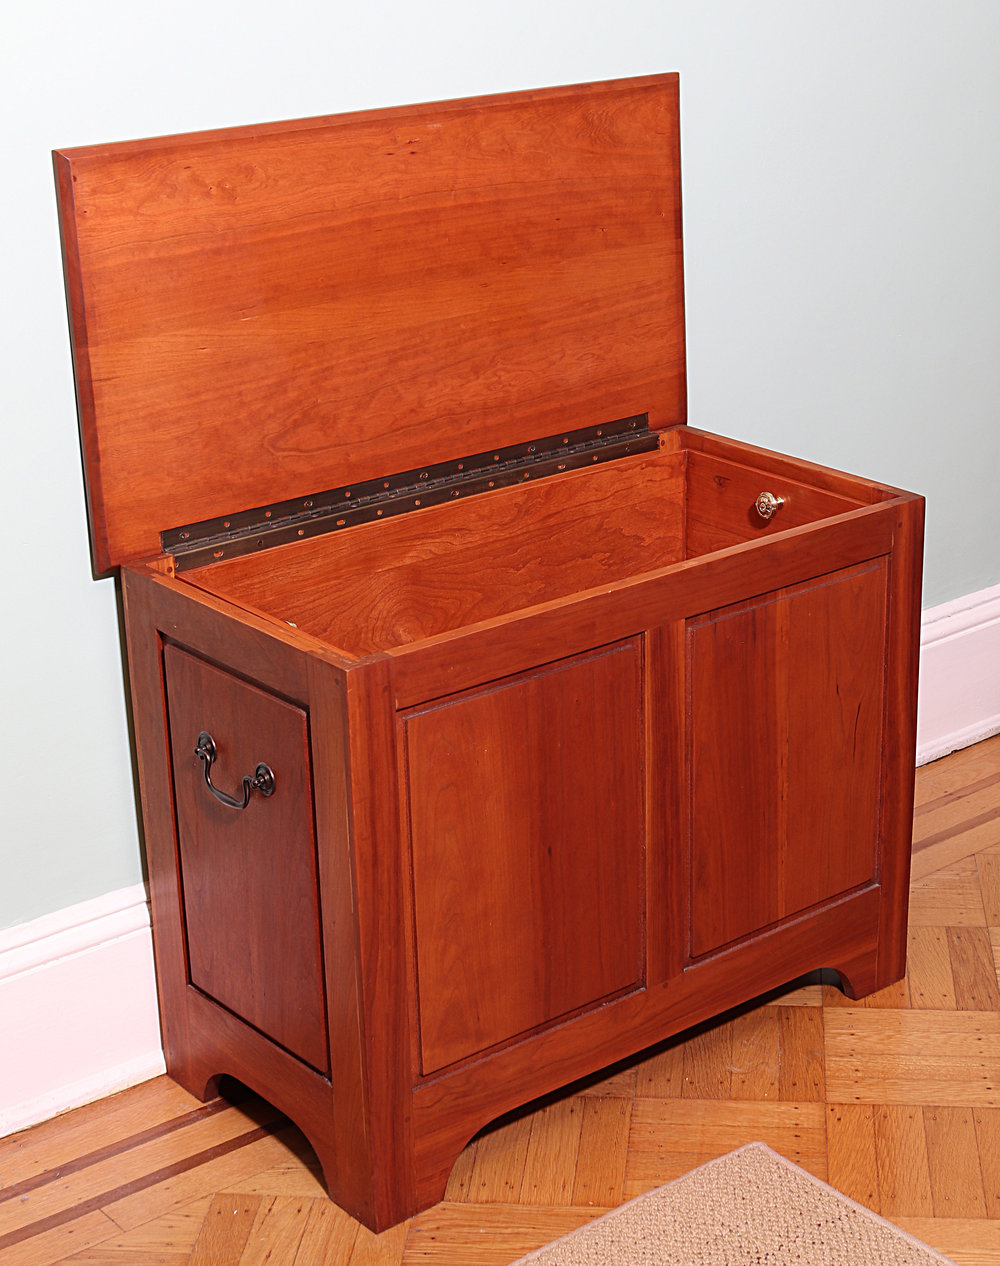 Shaker style cherry sewing or toy chest